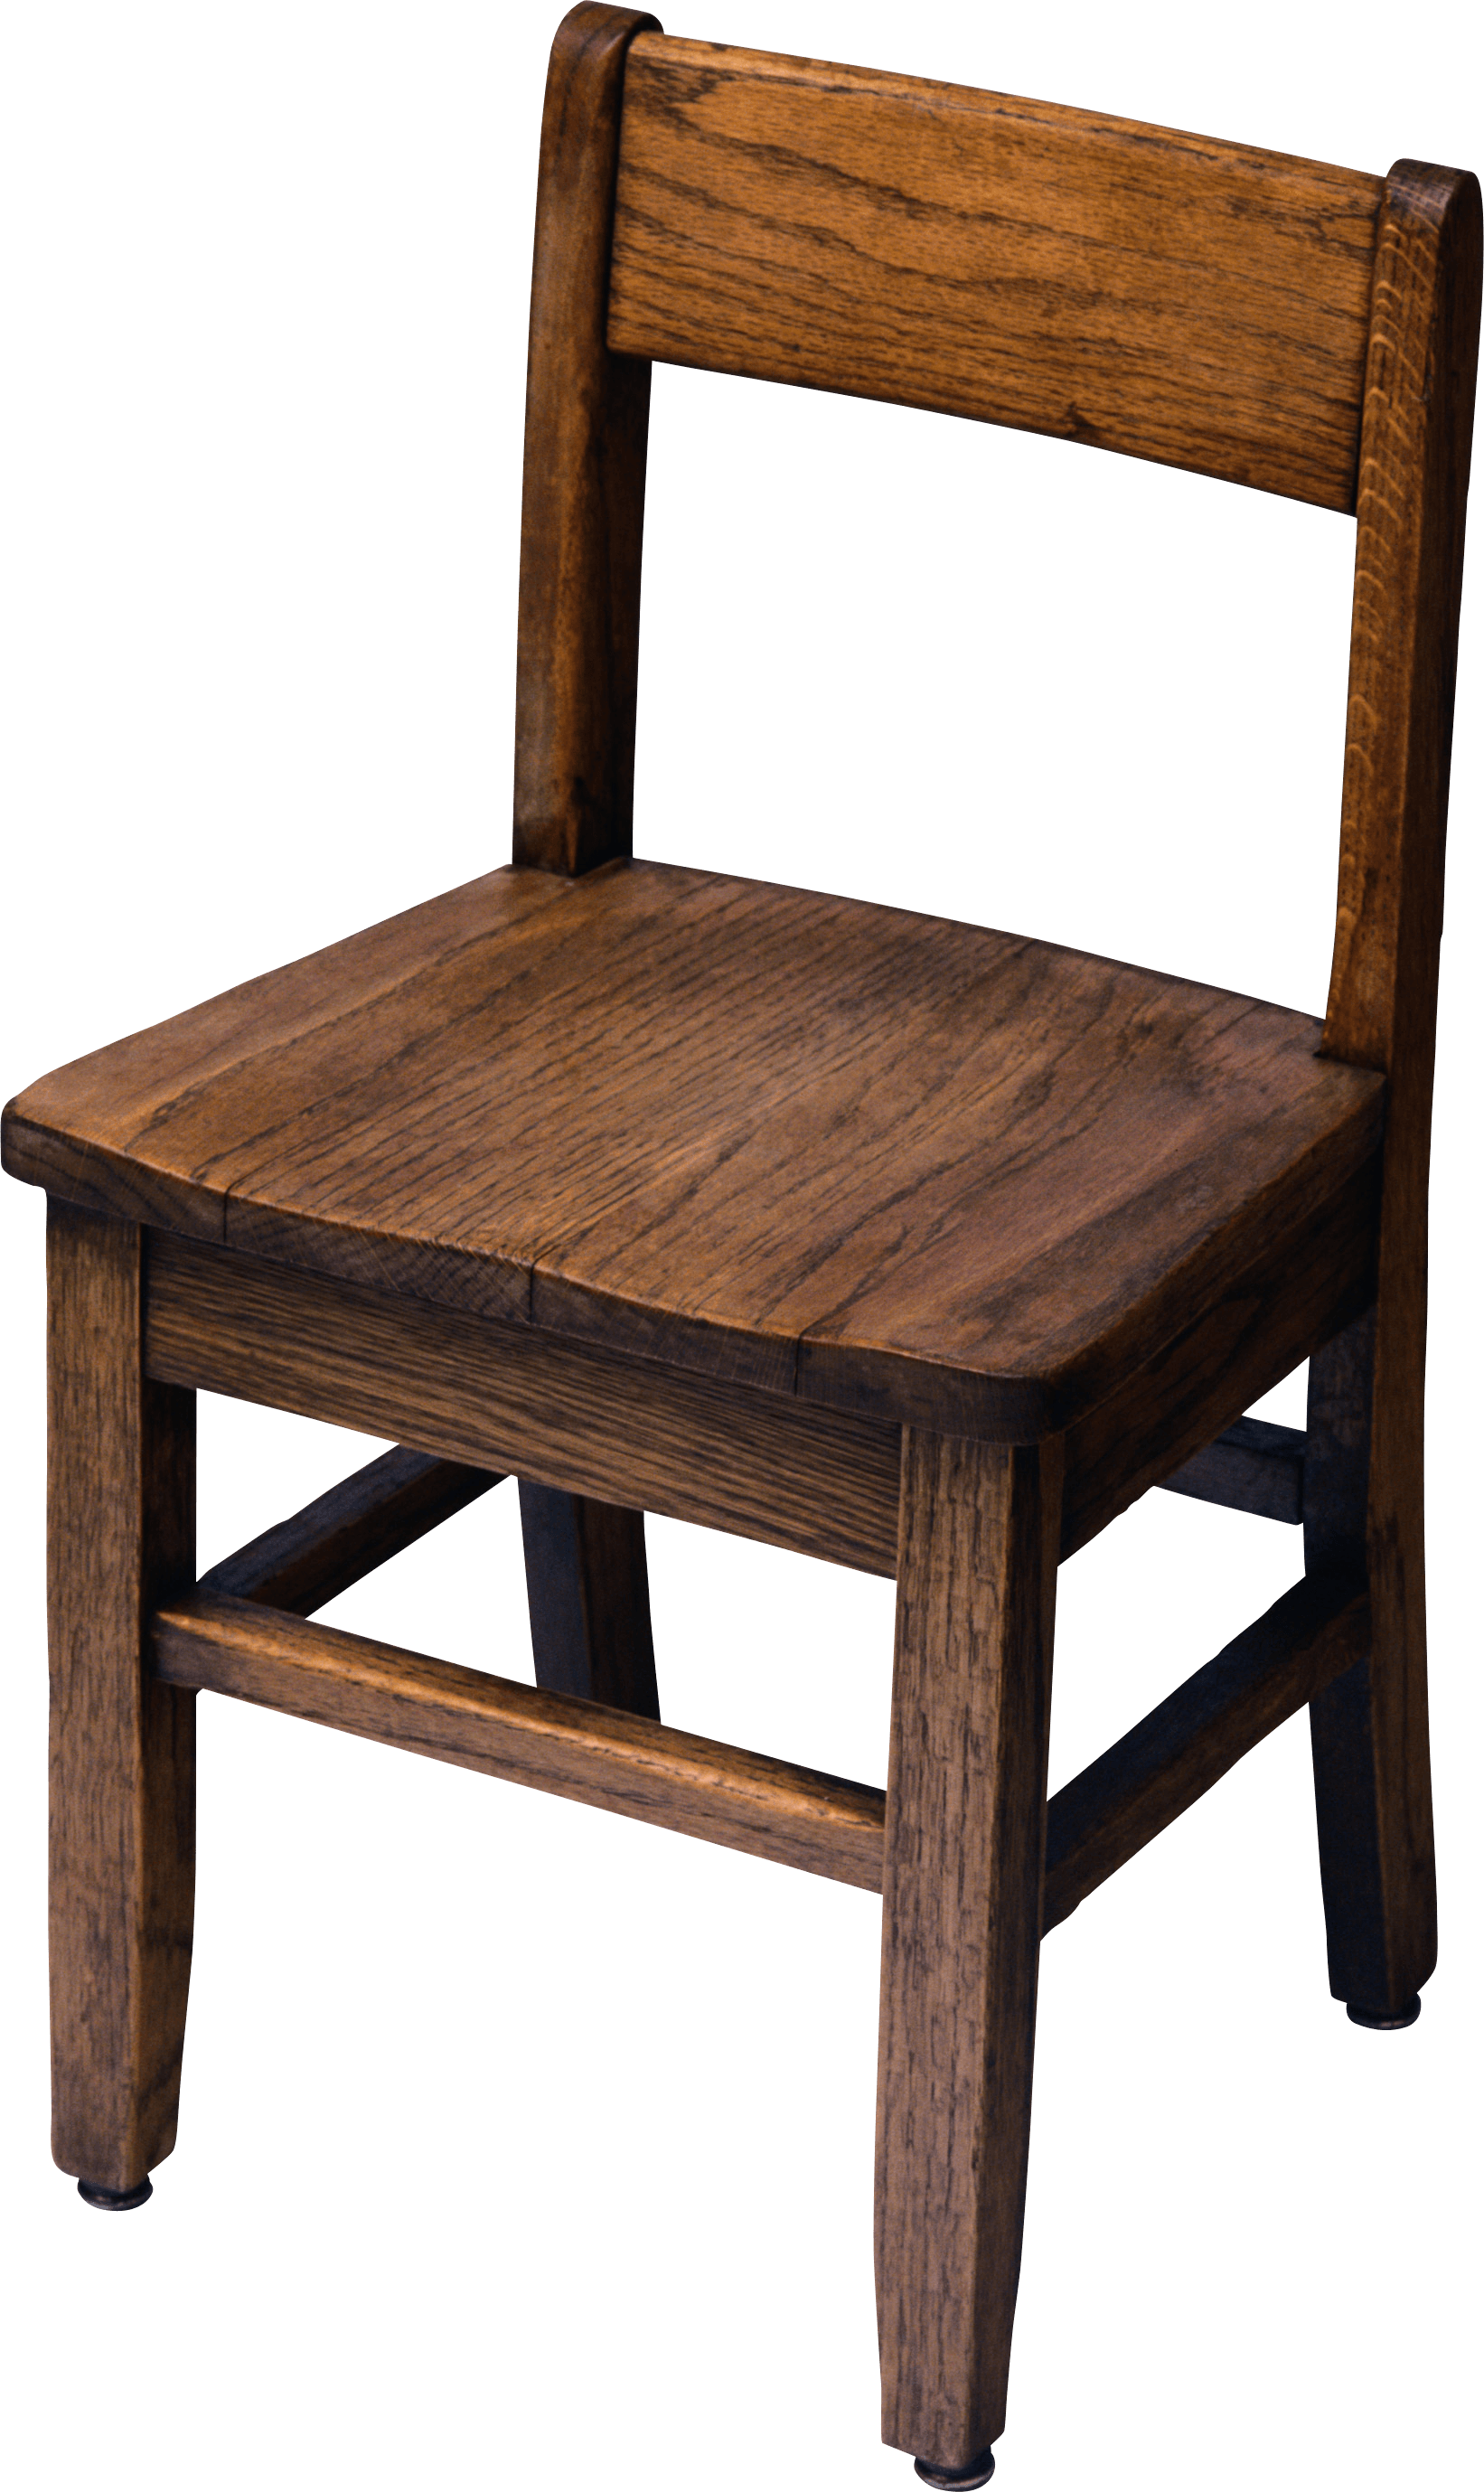 Old Wooden Chair Transparent PNG